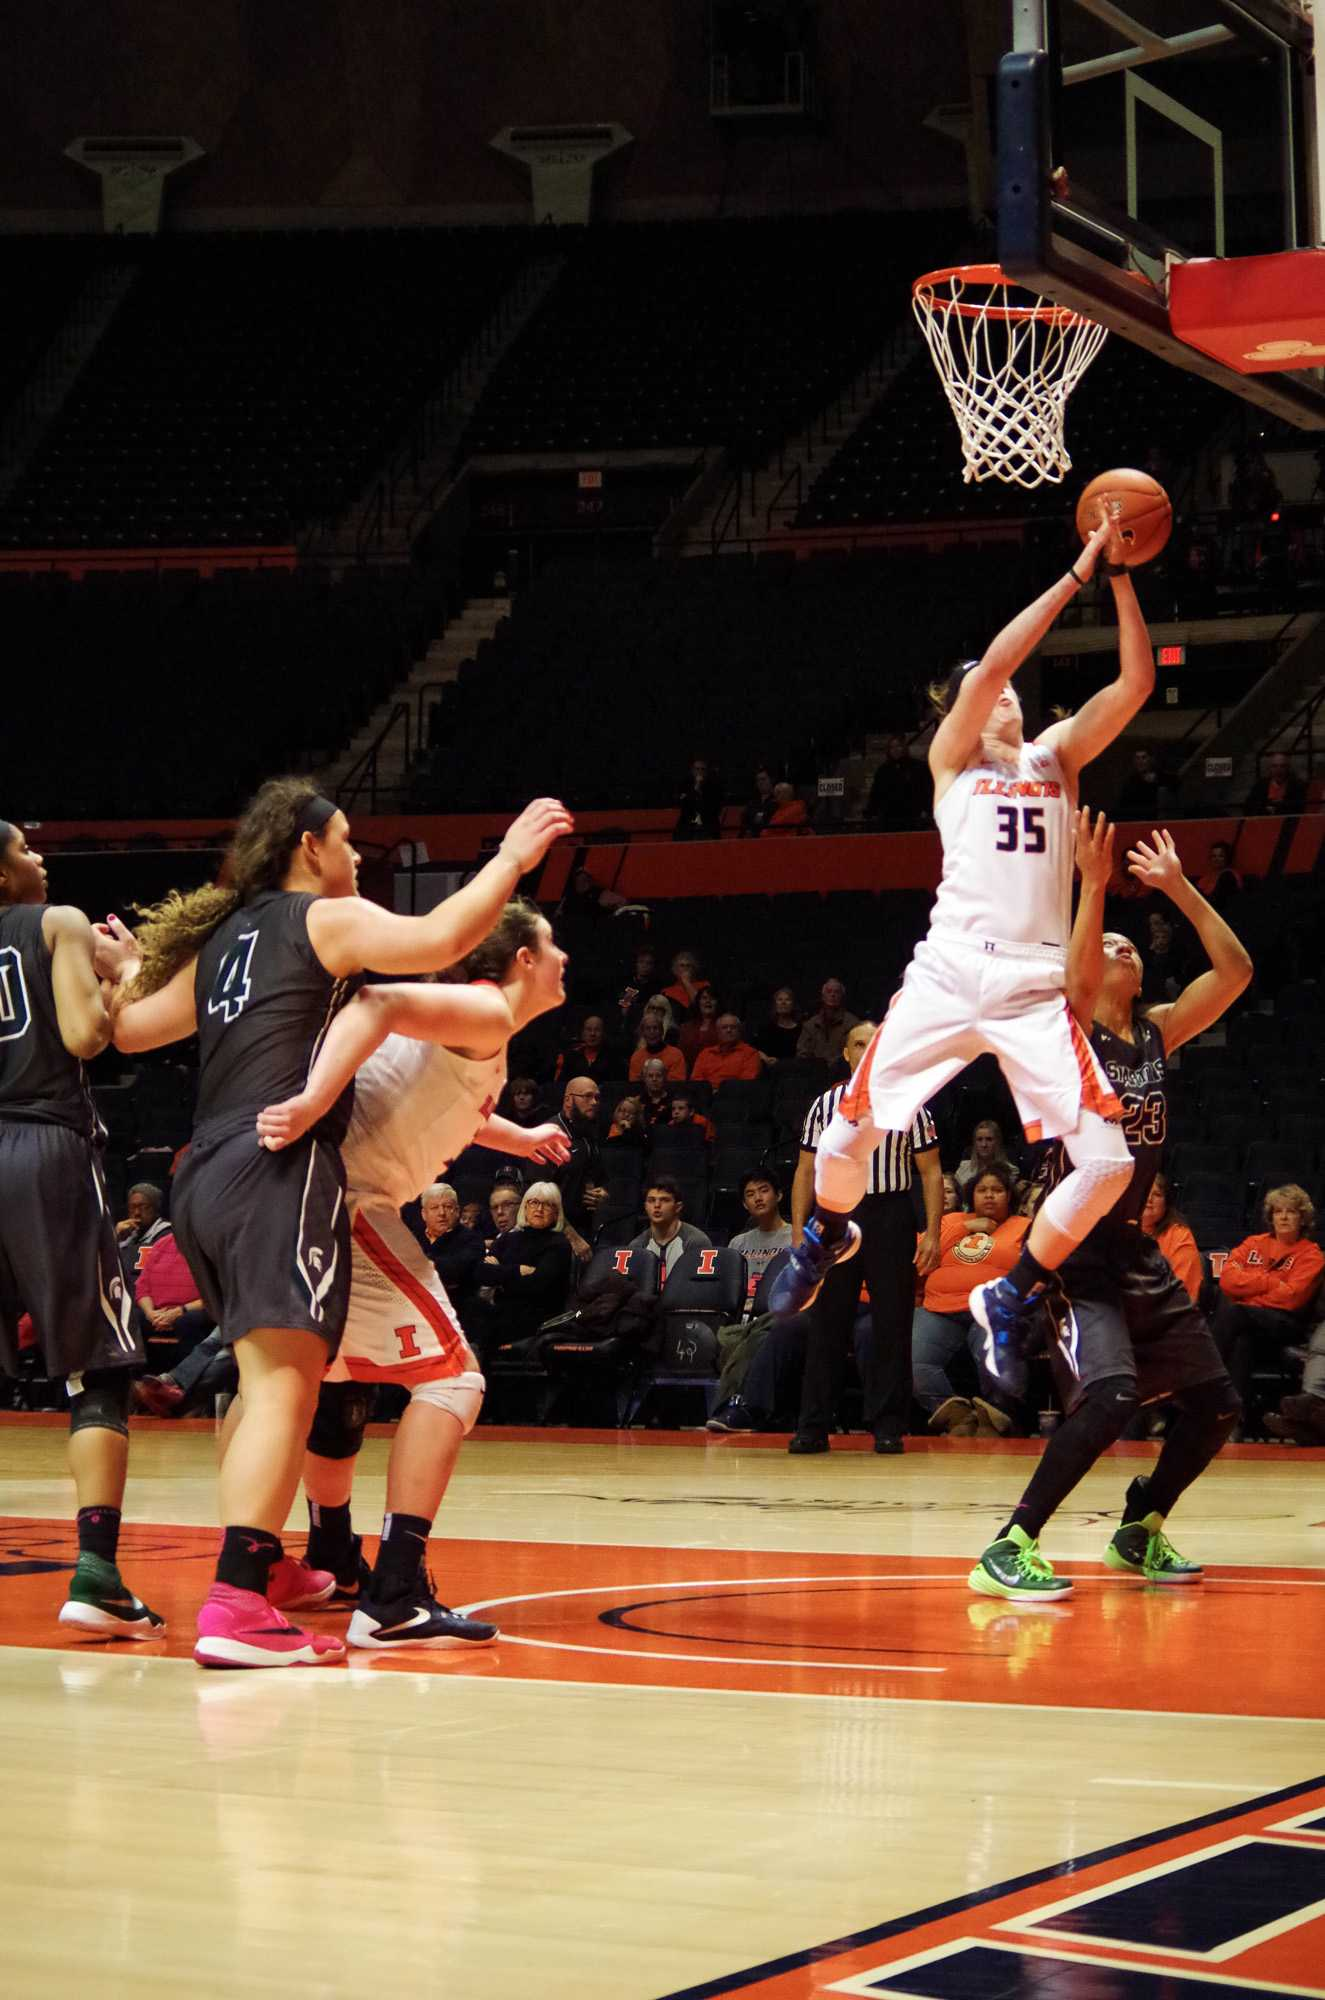 All eyes are on Illinois' Alex Wittinger (35), as she goes up for the layup at the game against Michigan State at State Farm Center on Wednesday, Feb. 24th, 2016. The Illini lost 43-71.